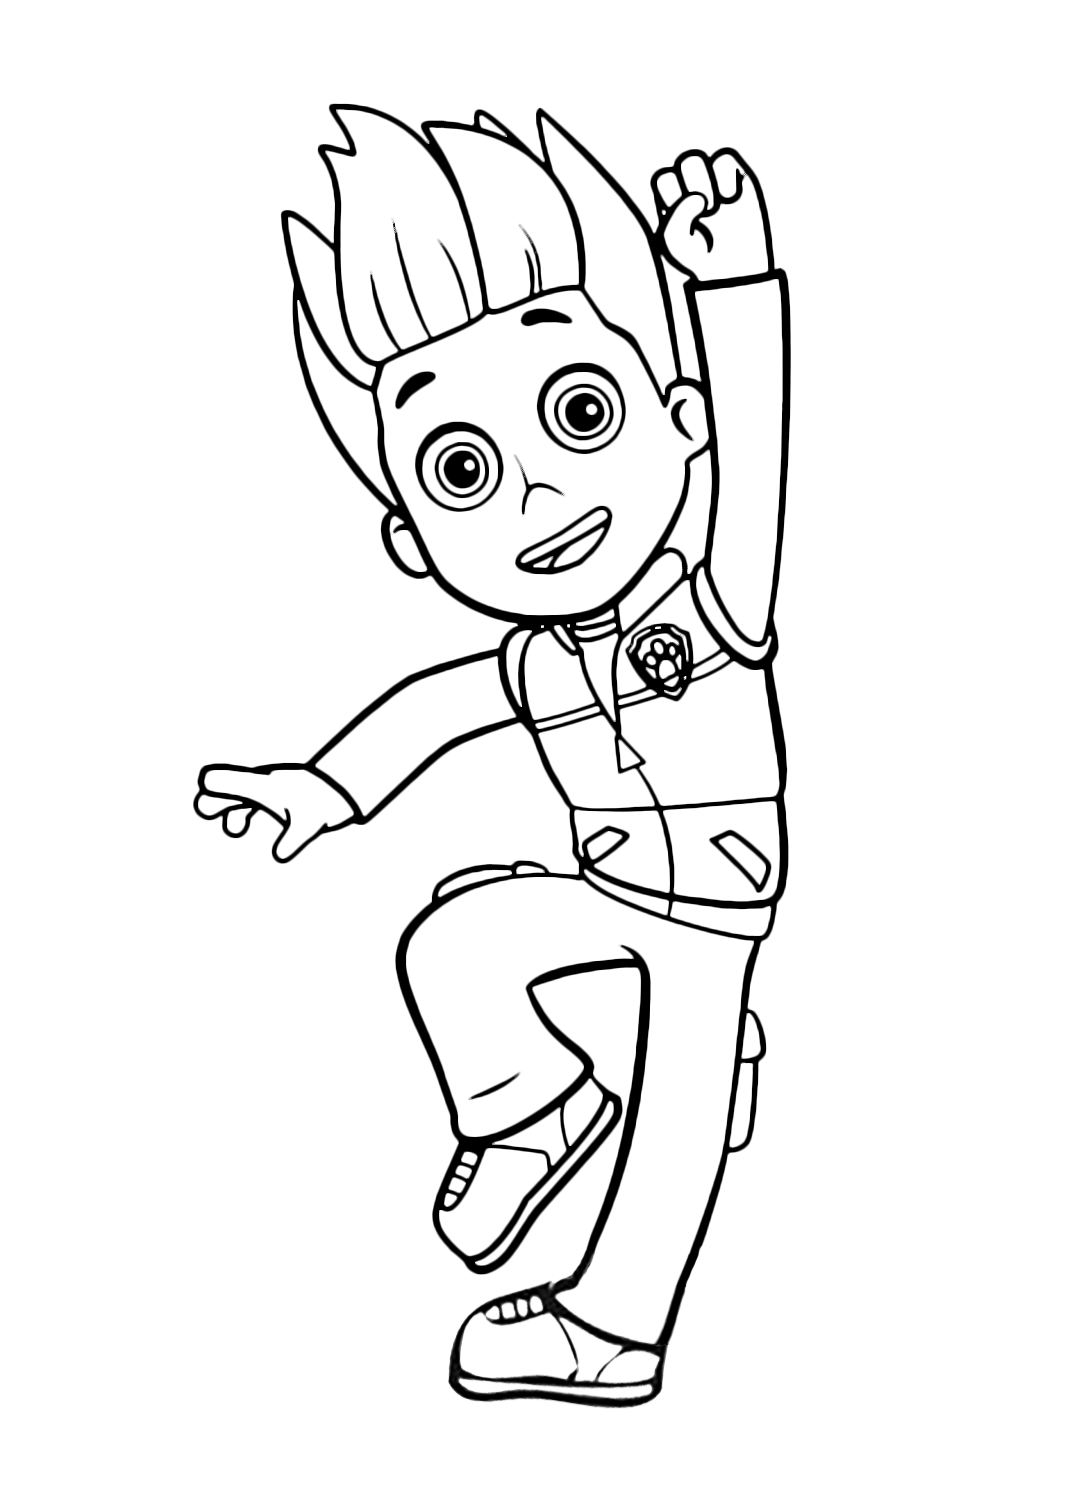 paw patrol coloring pages ryder ryder paw patrol coloring pages download and print ryder pages coloring paw patrol ryder